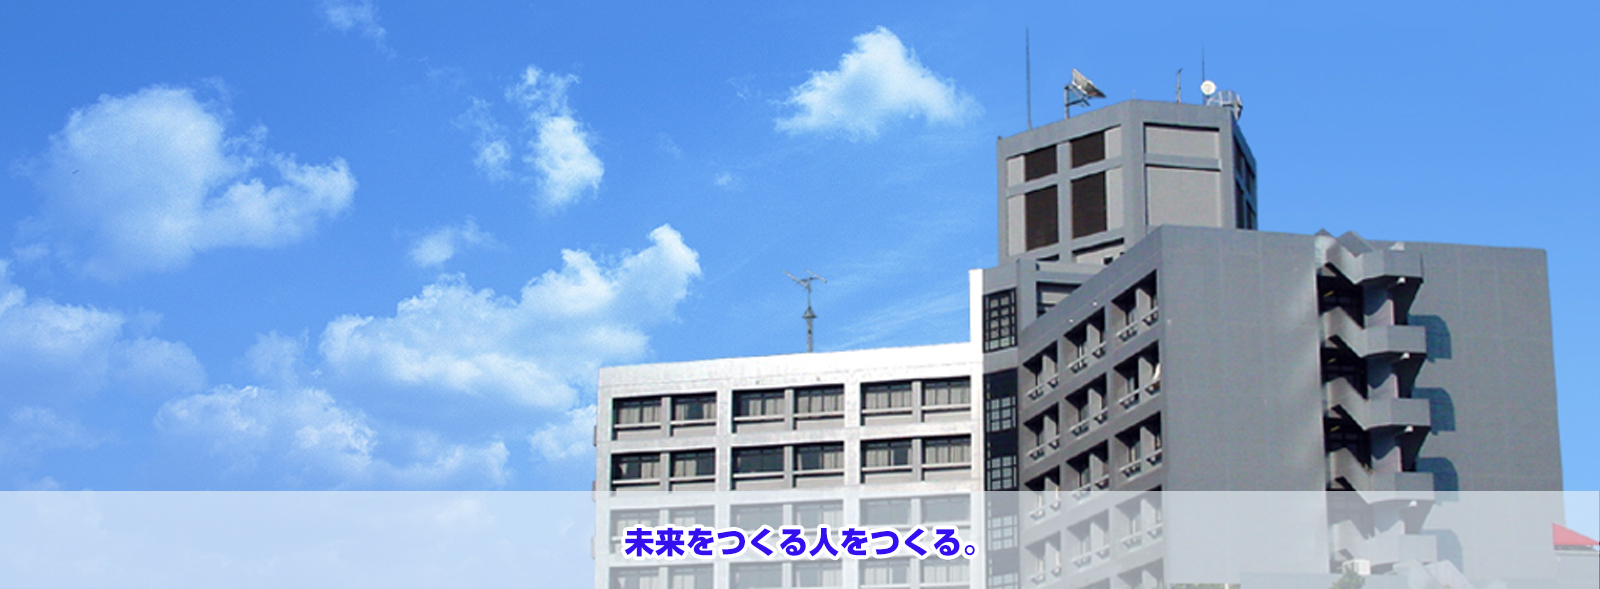 School building background photograph 02 which forms person making the future